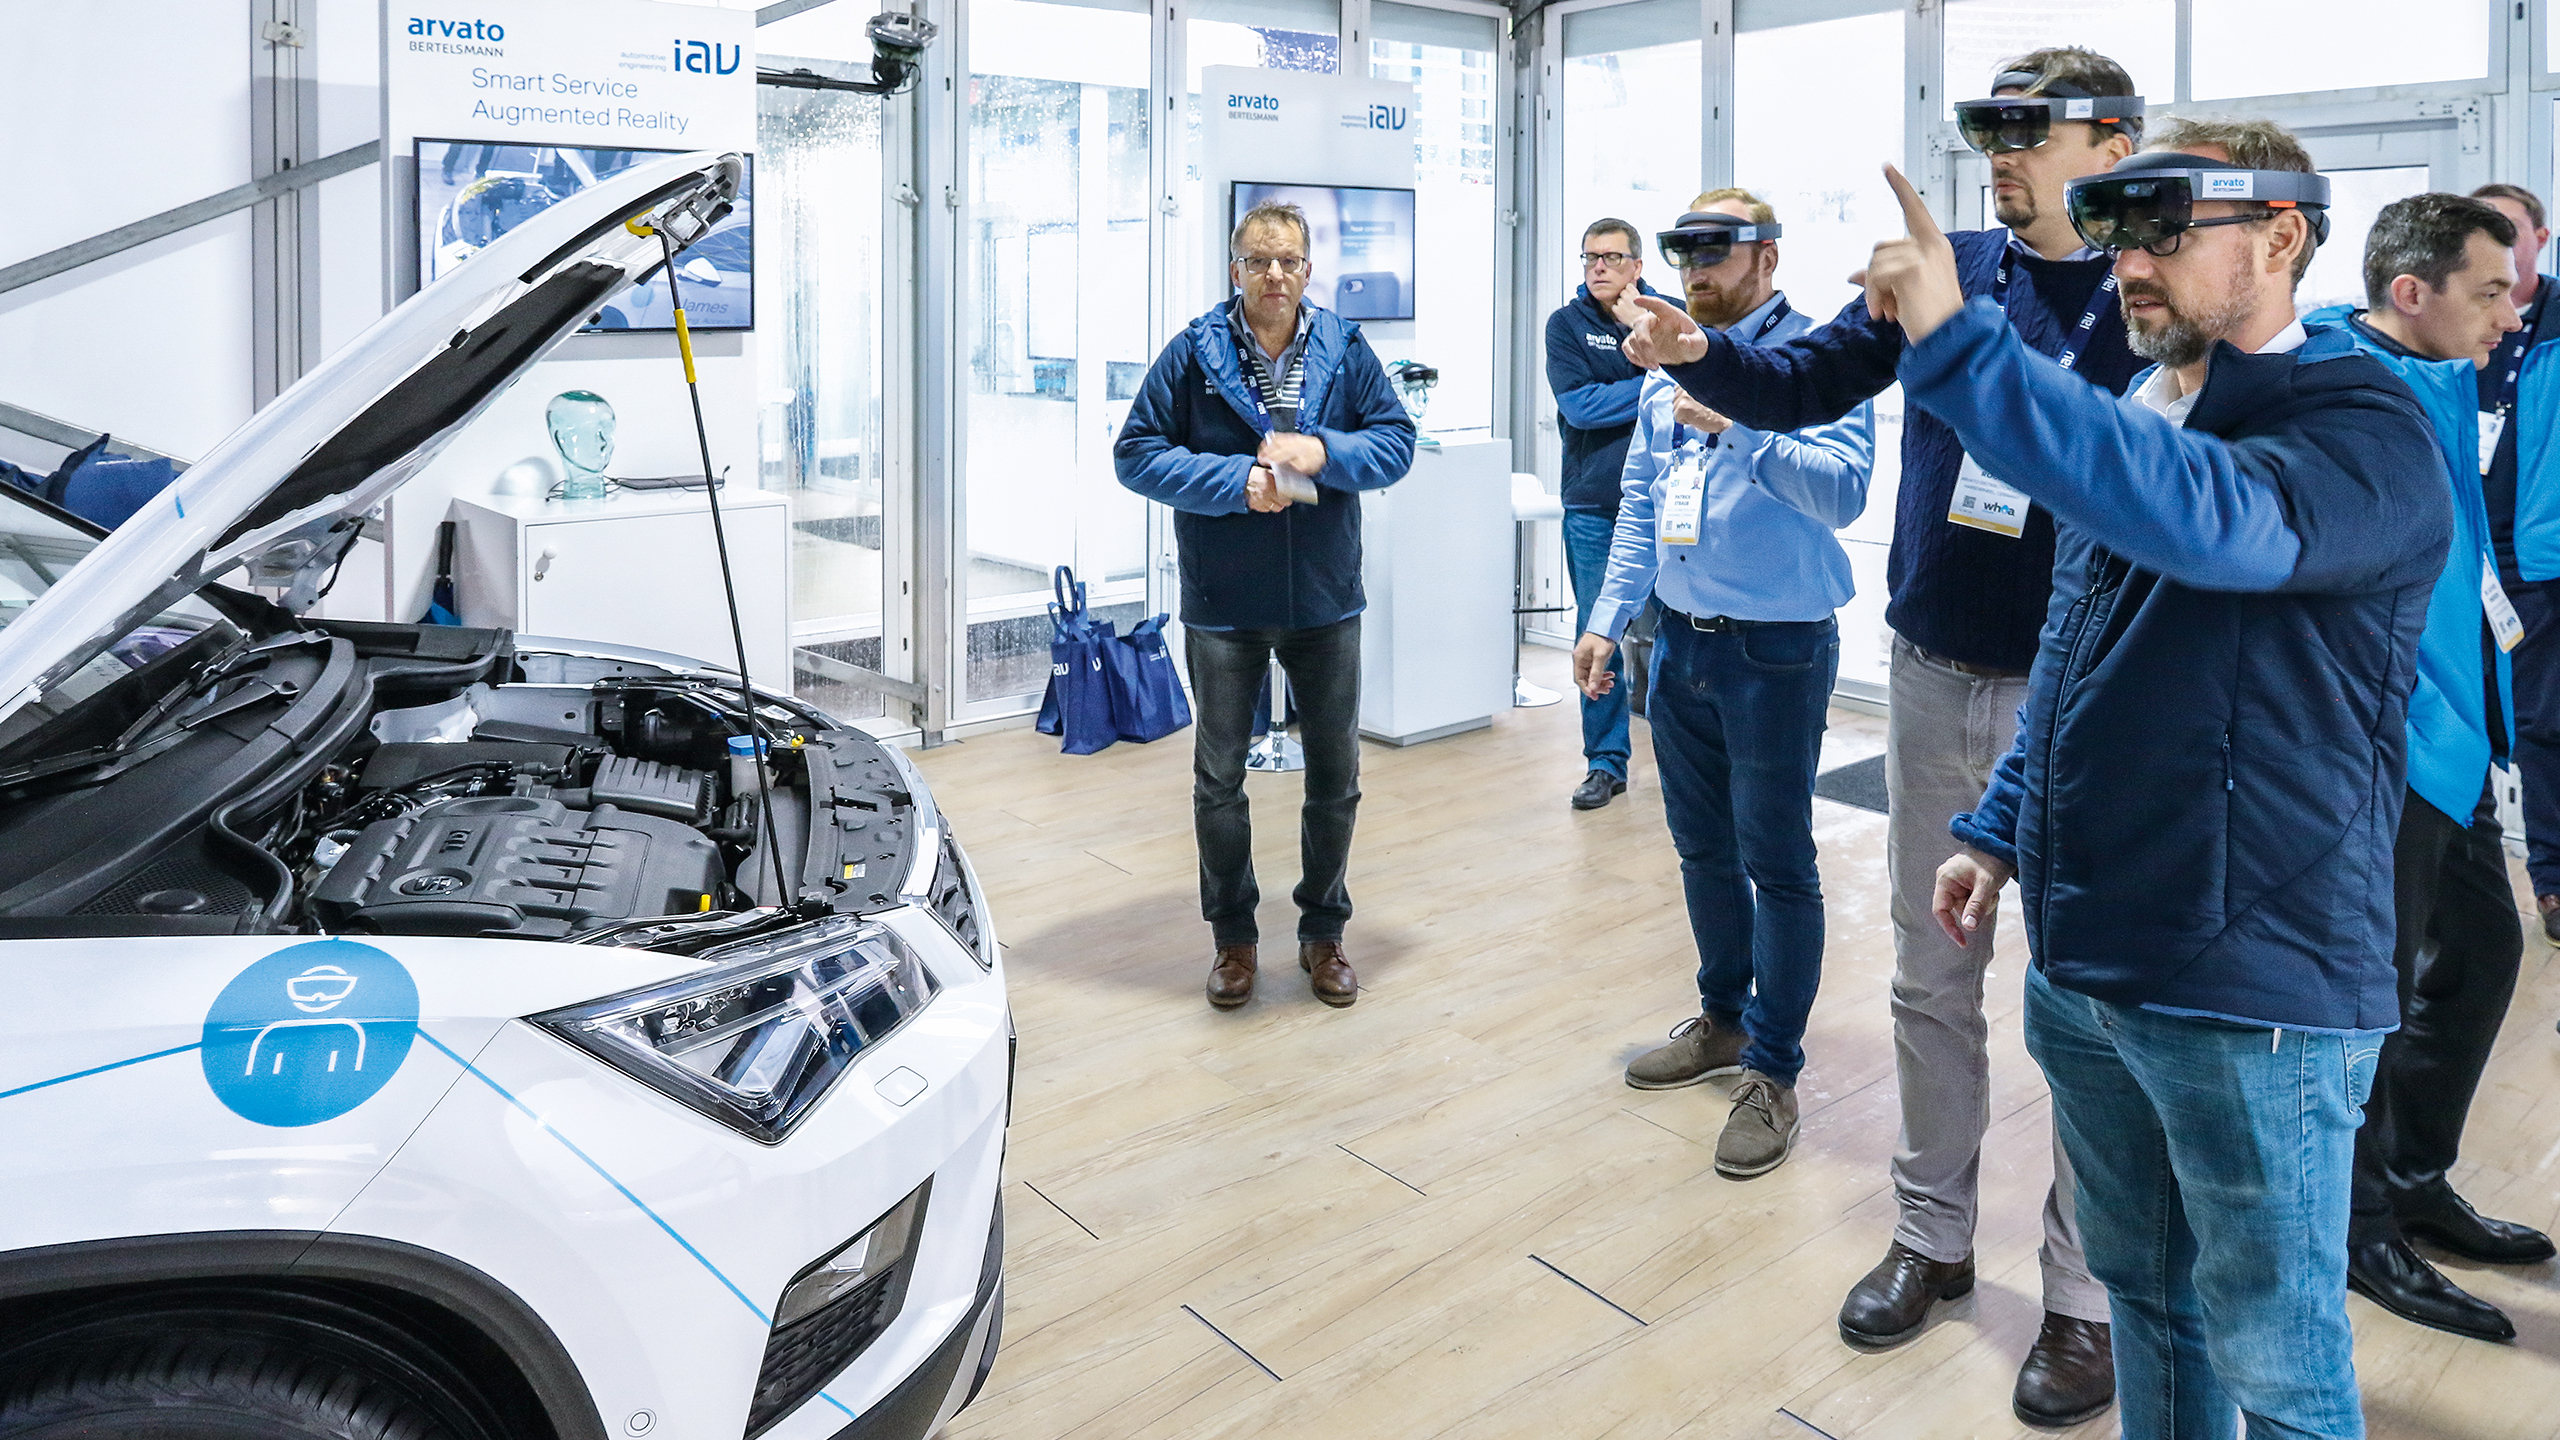 automotion 1801 08 Augmented reality AR Messebesucher Menschen Auto 16 9